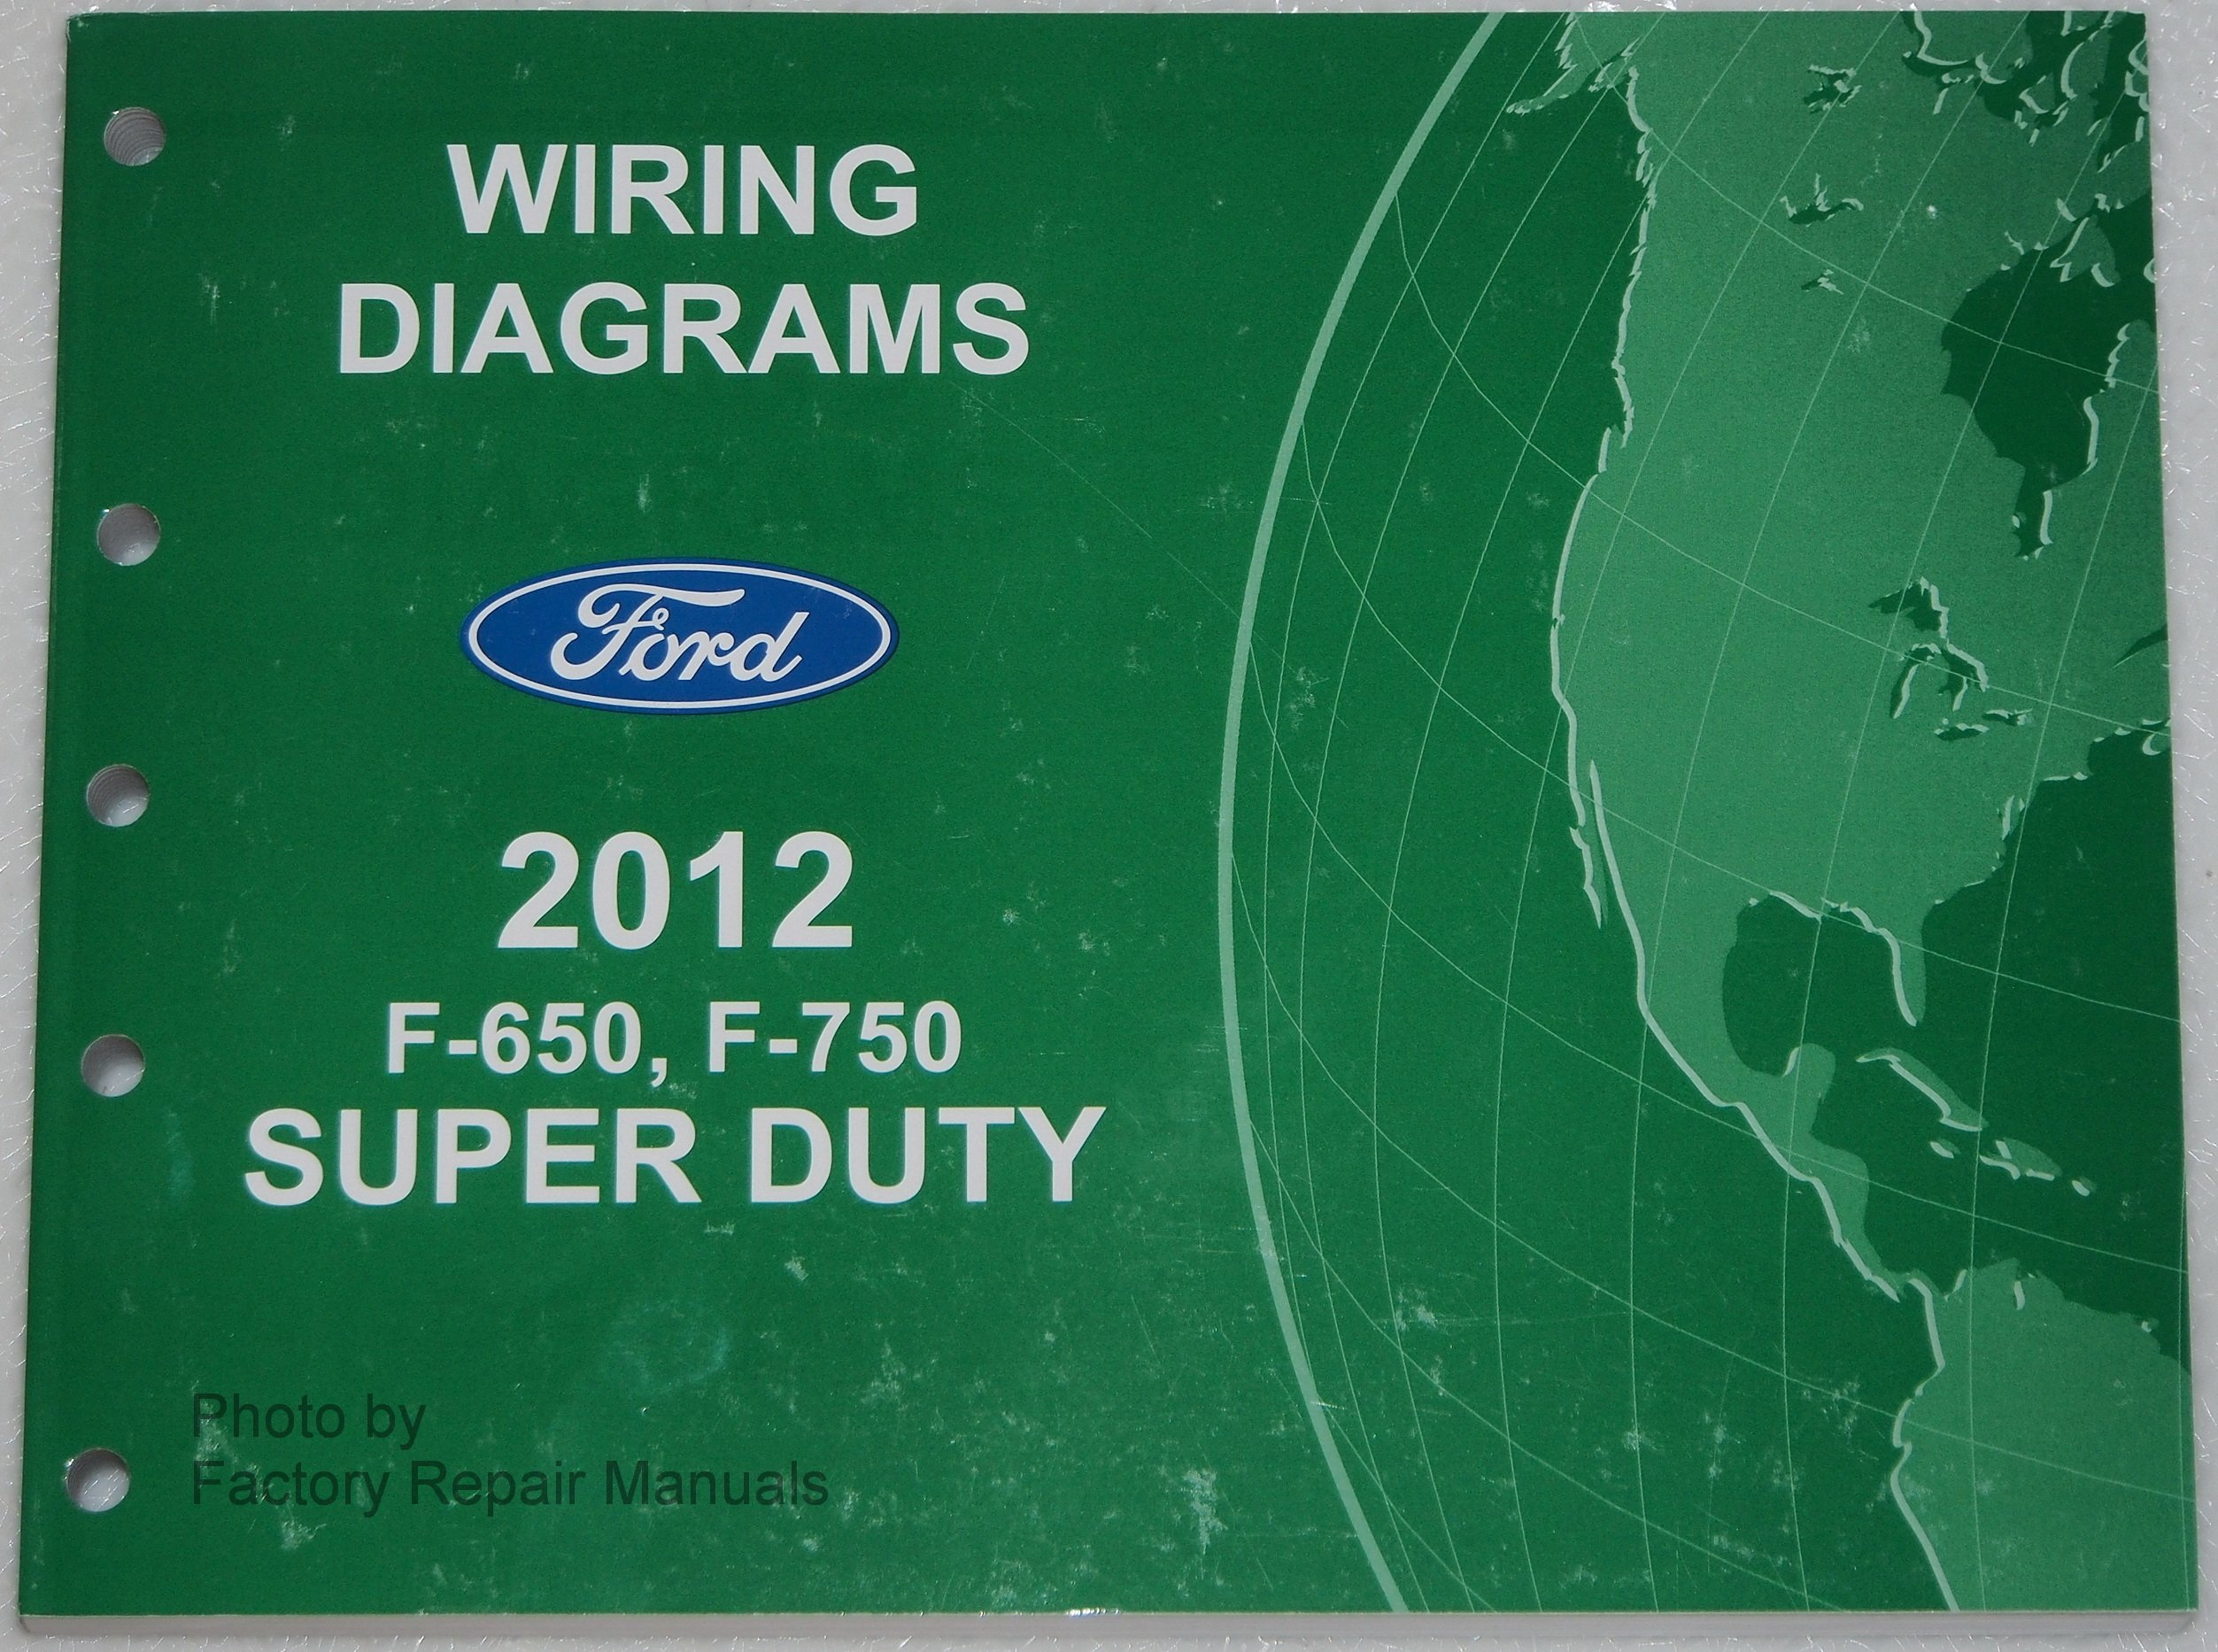 2012 f650 f750 wiring diagram ford motor company amazon com books rh amazon  com ford f750